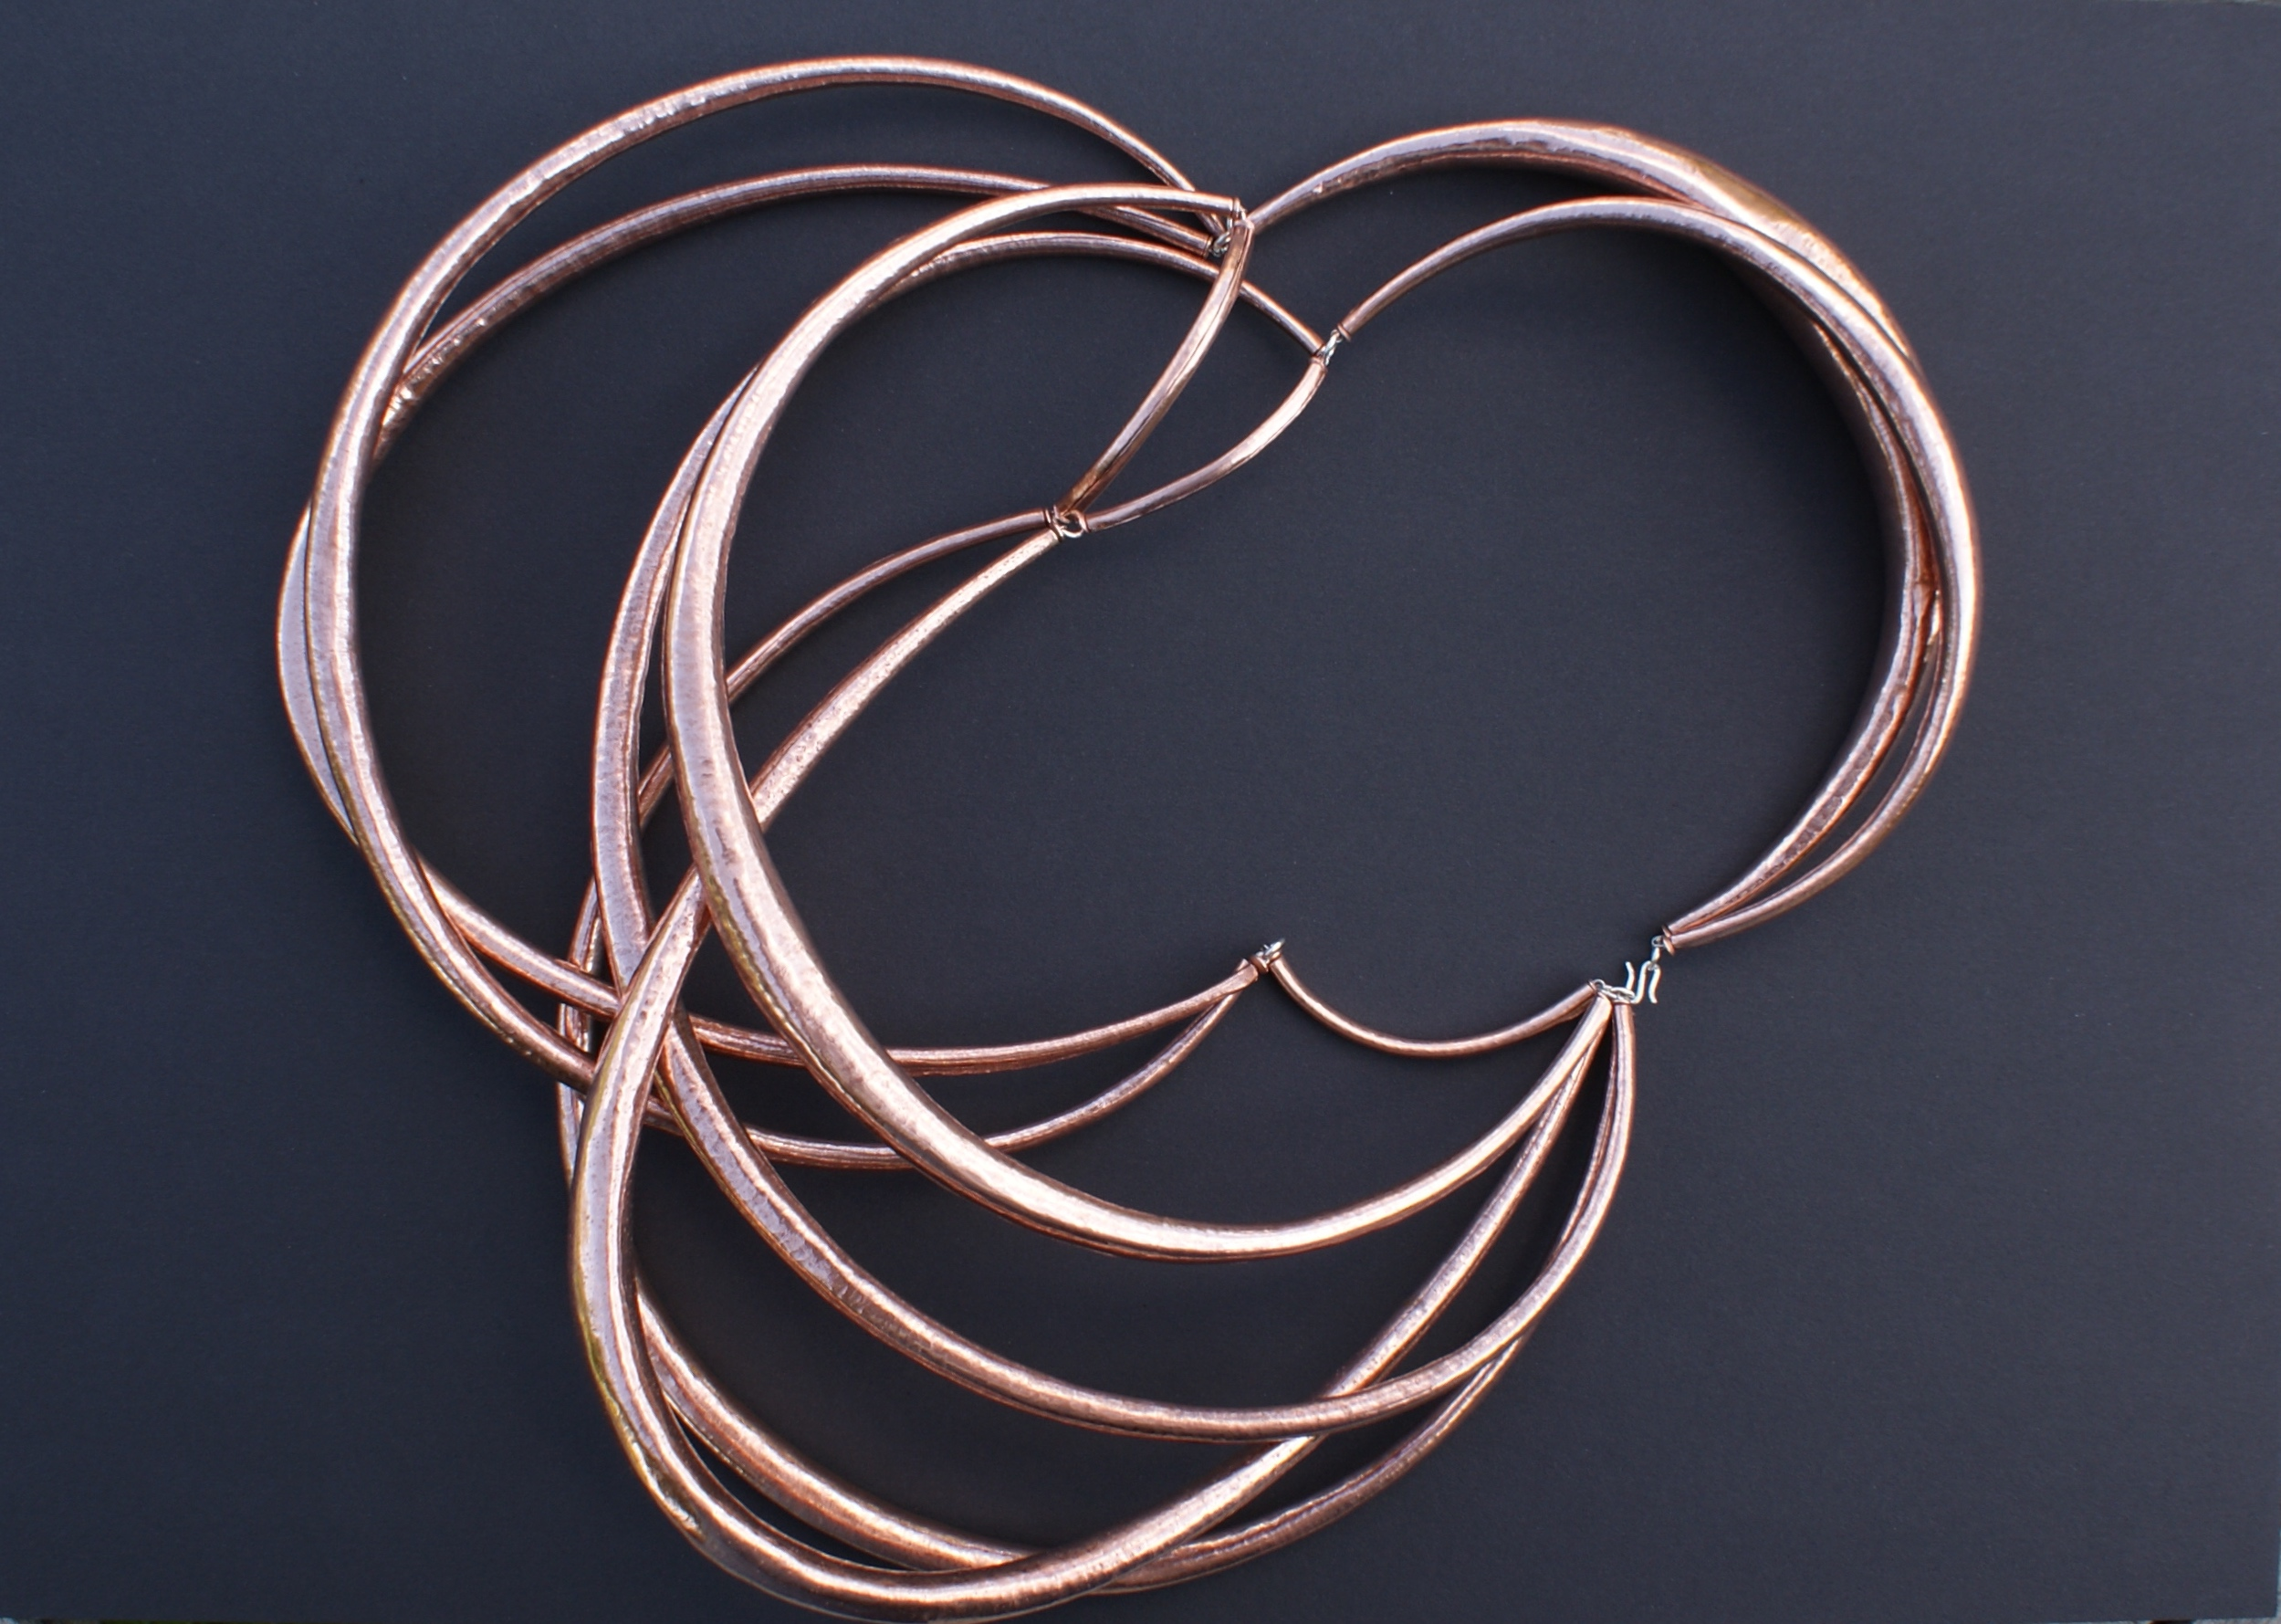 necklace copper : 1050 €